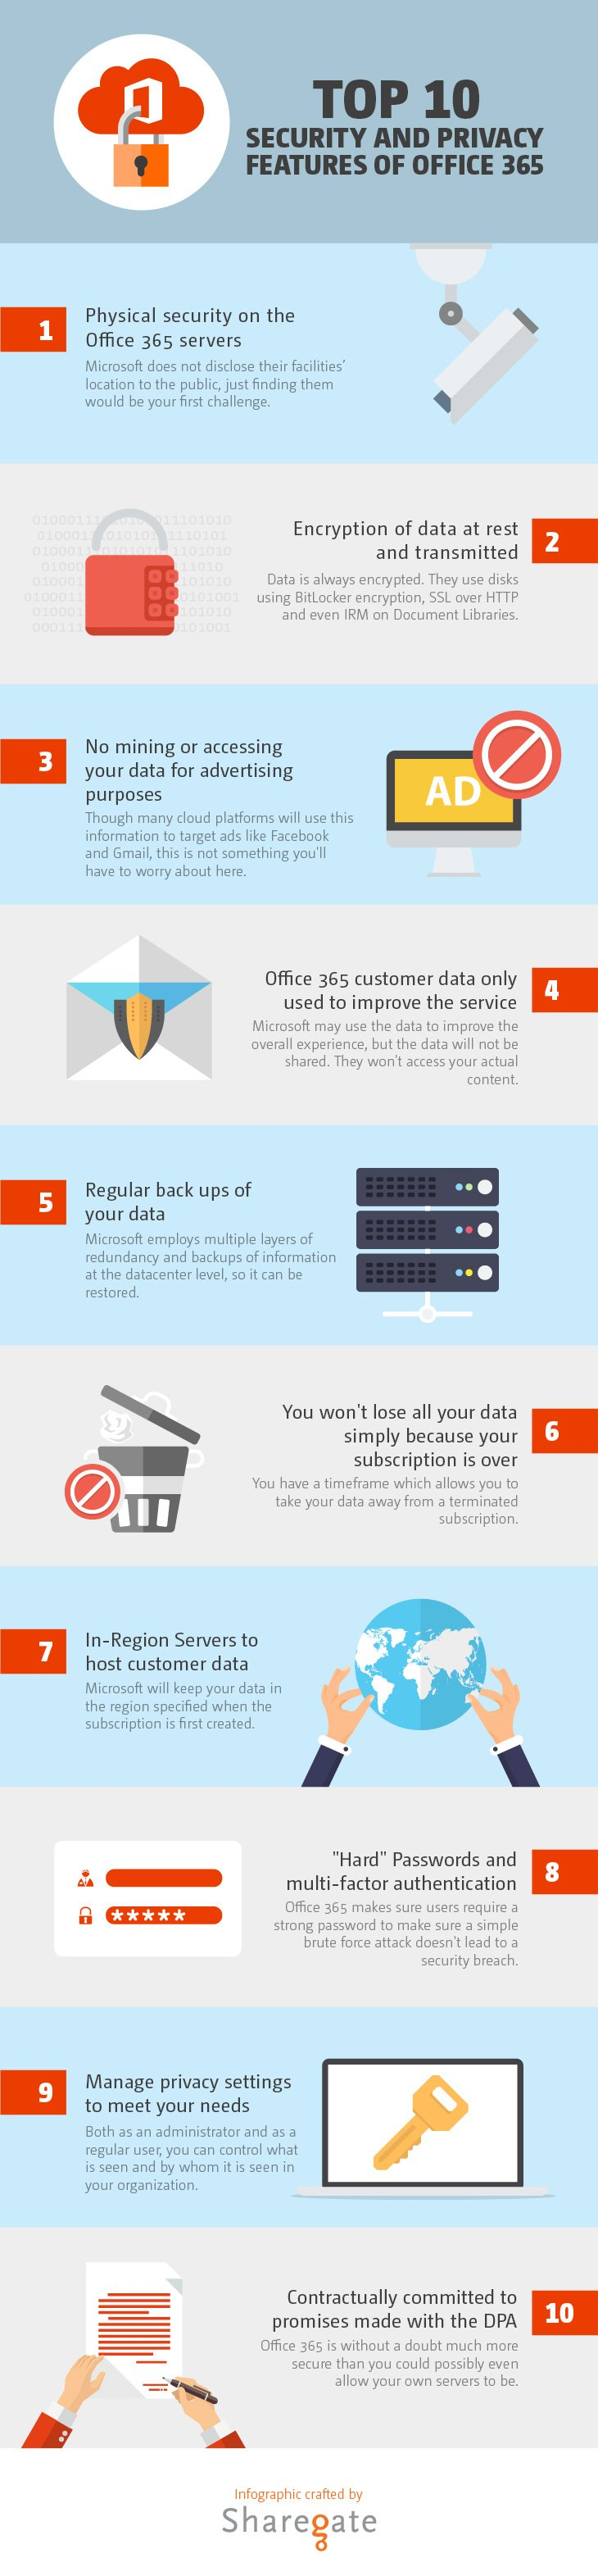 Office 365 security & data protection features infographic